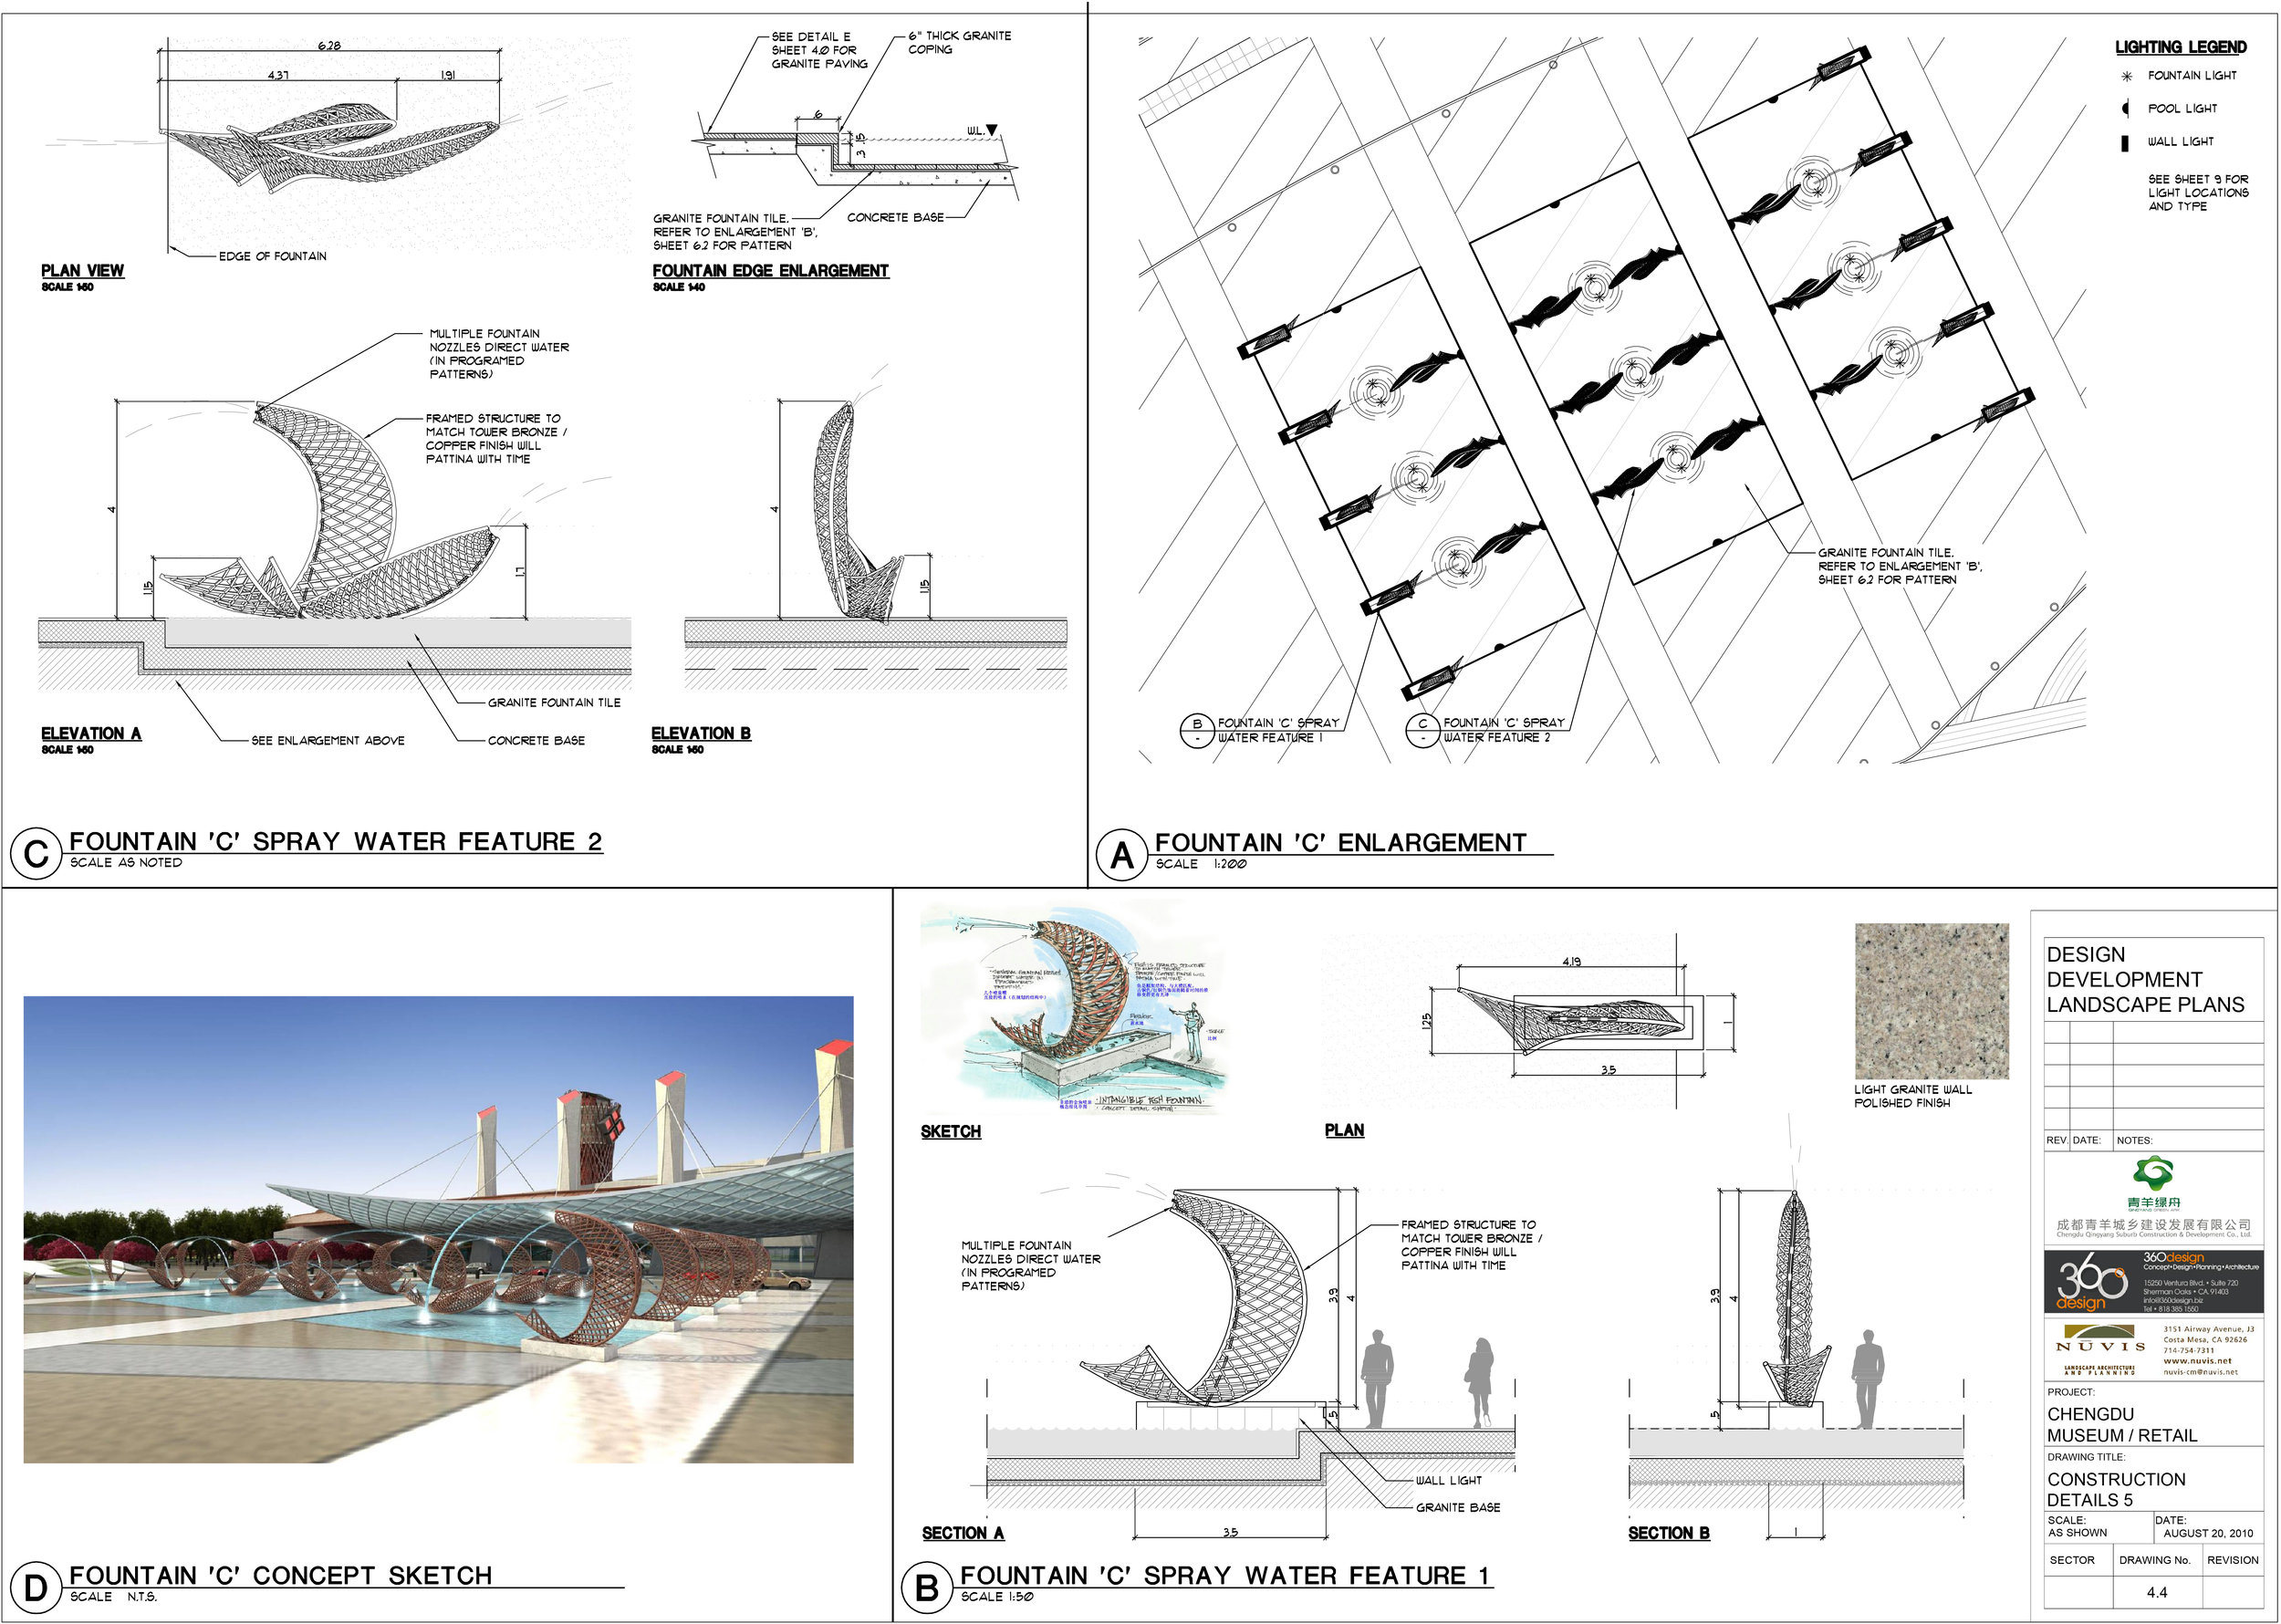 Intangible-Mus_DD-CONSTRUCTION DETAILS_MUSEUM.jpg